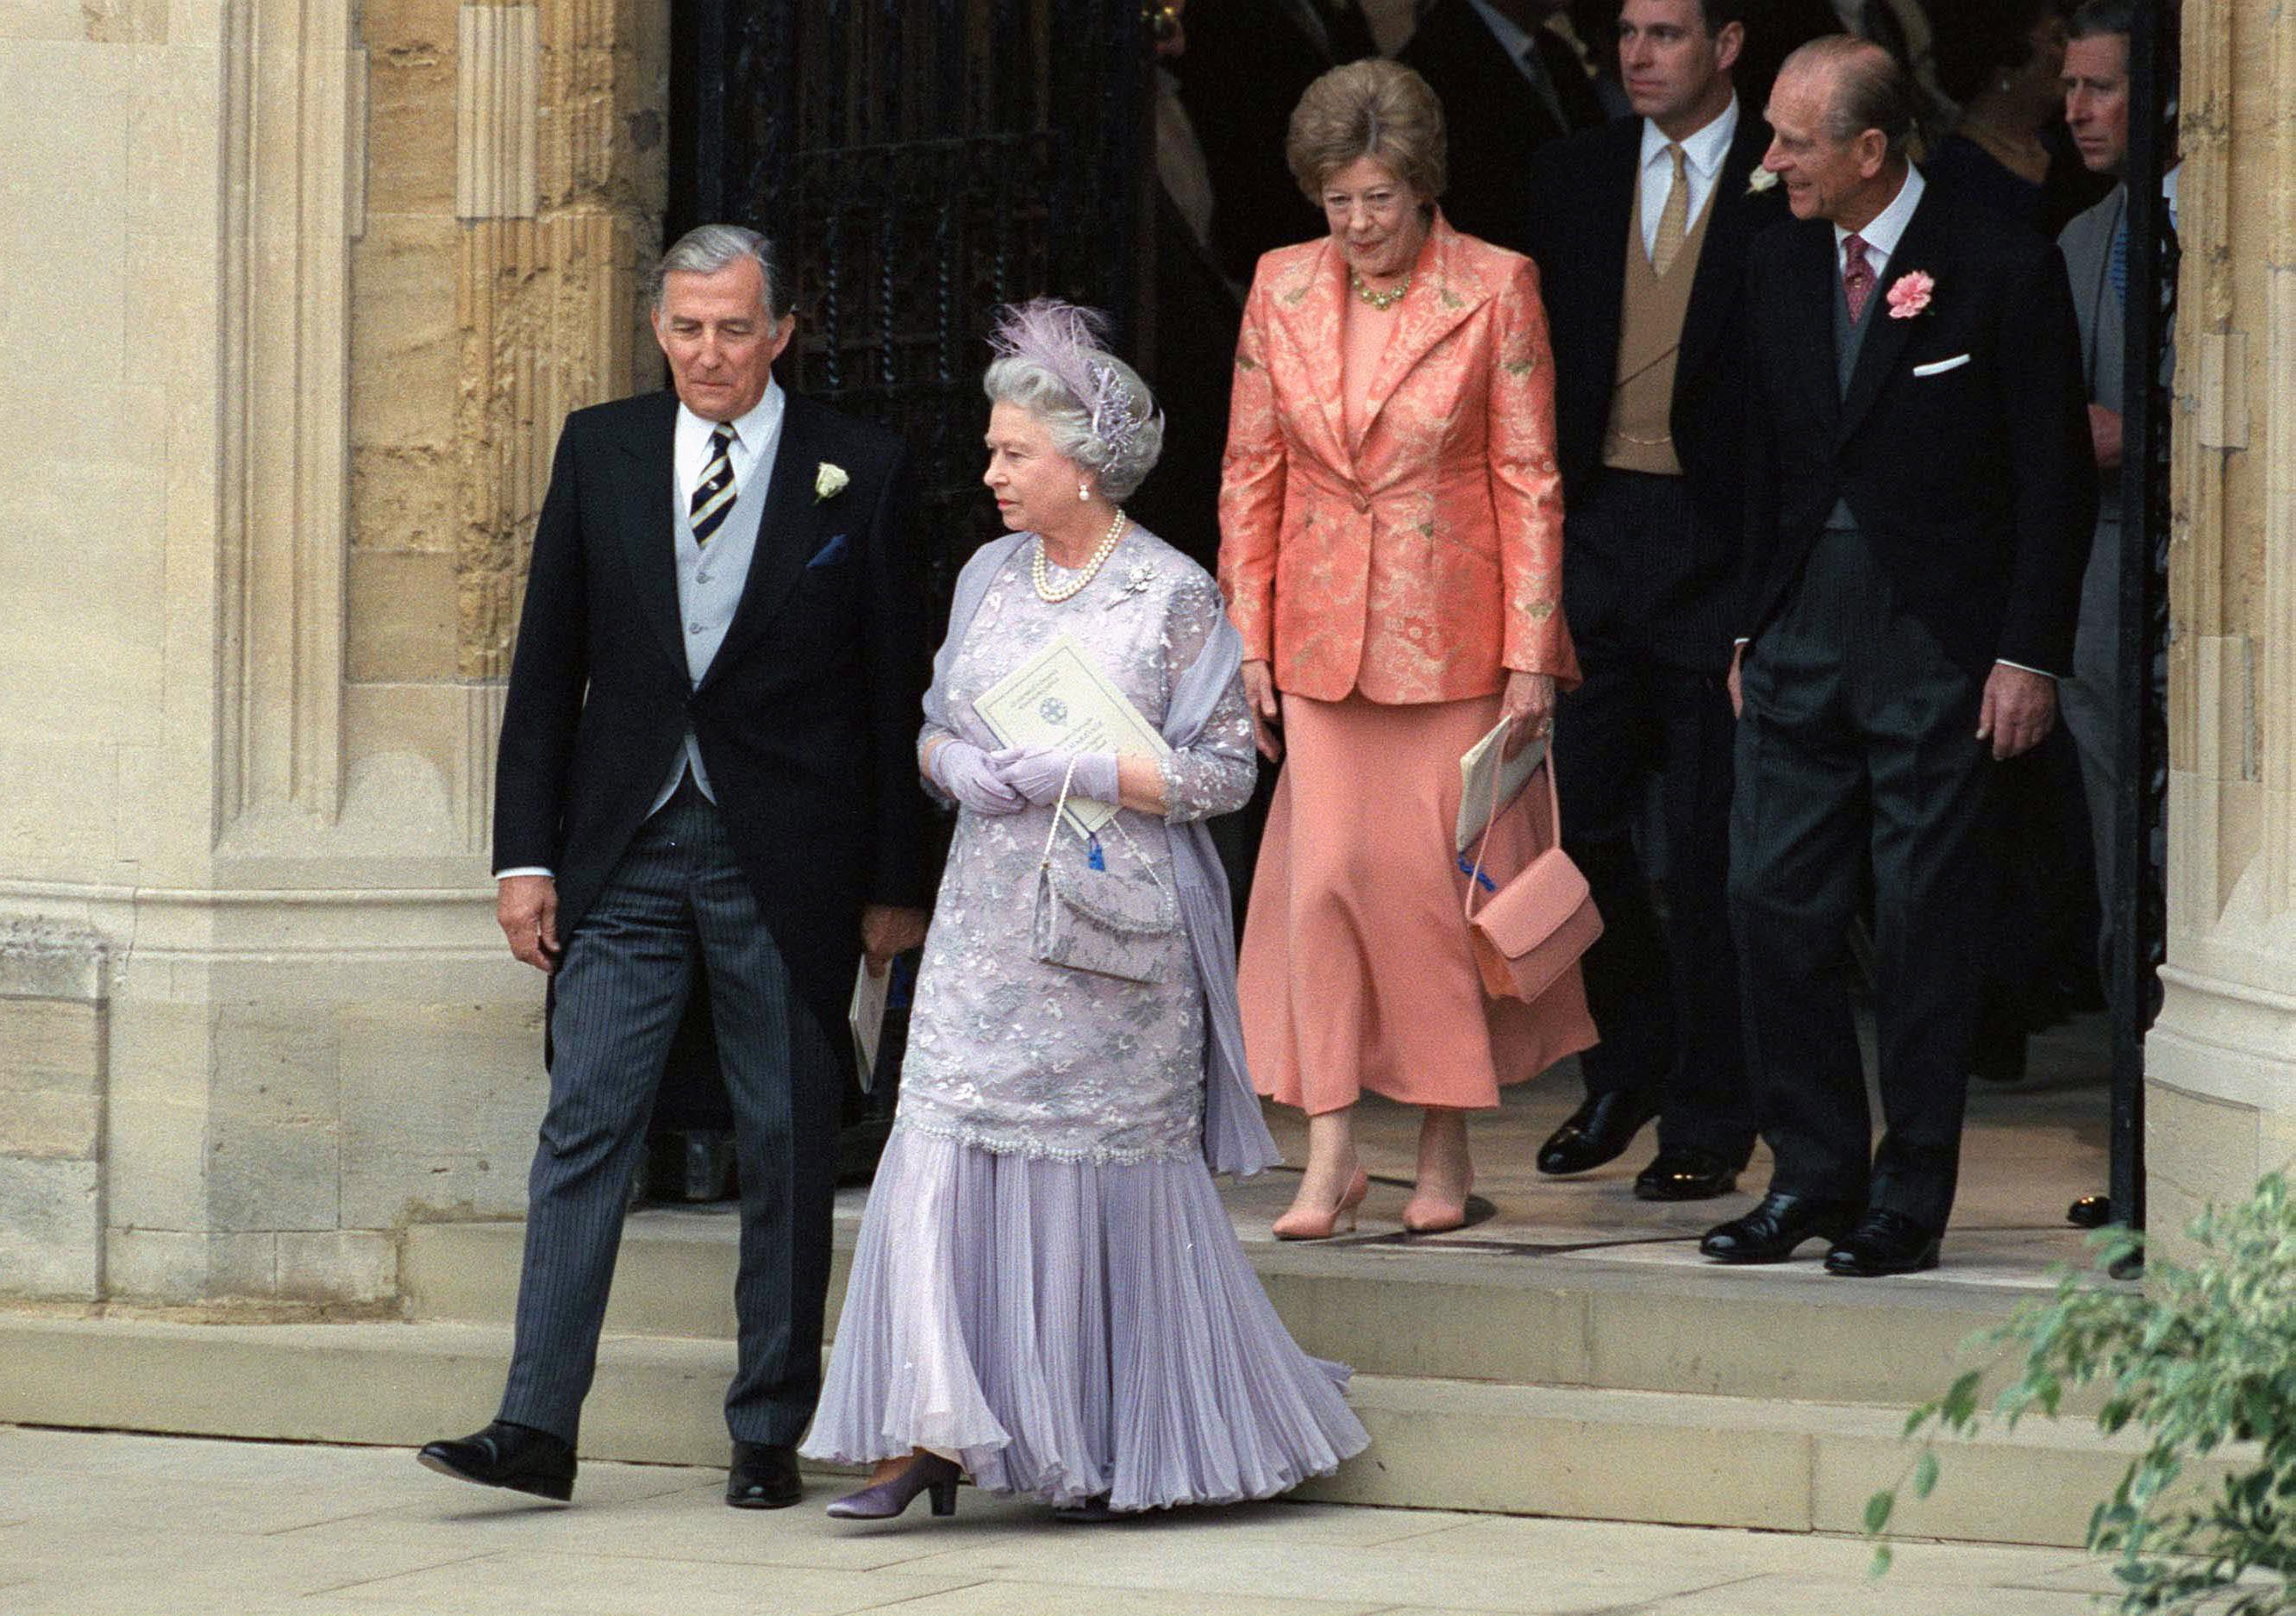 In 1999, Queen Elizabeth's youngest, Prince Edward , married Sophie Rhys-Jones in a relatively private ceremony (by royal standards, at least). Break from her blue streak, the Queen fashioned herself in a muted lilac palette for the occasion, donning a beaded dress with sheer sleeves and a pleated hem along with matching gloves and a feathered fascinator.